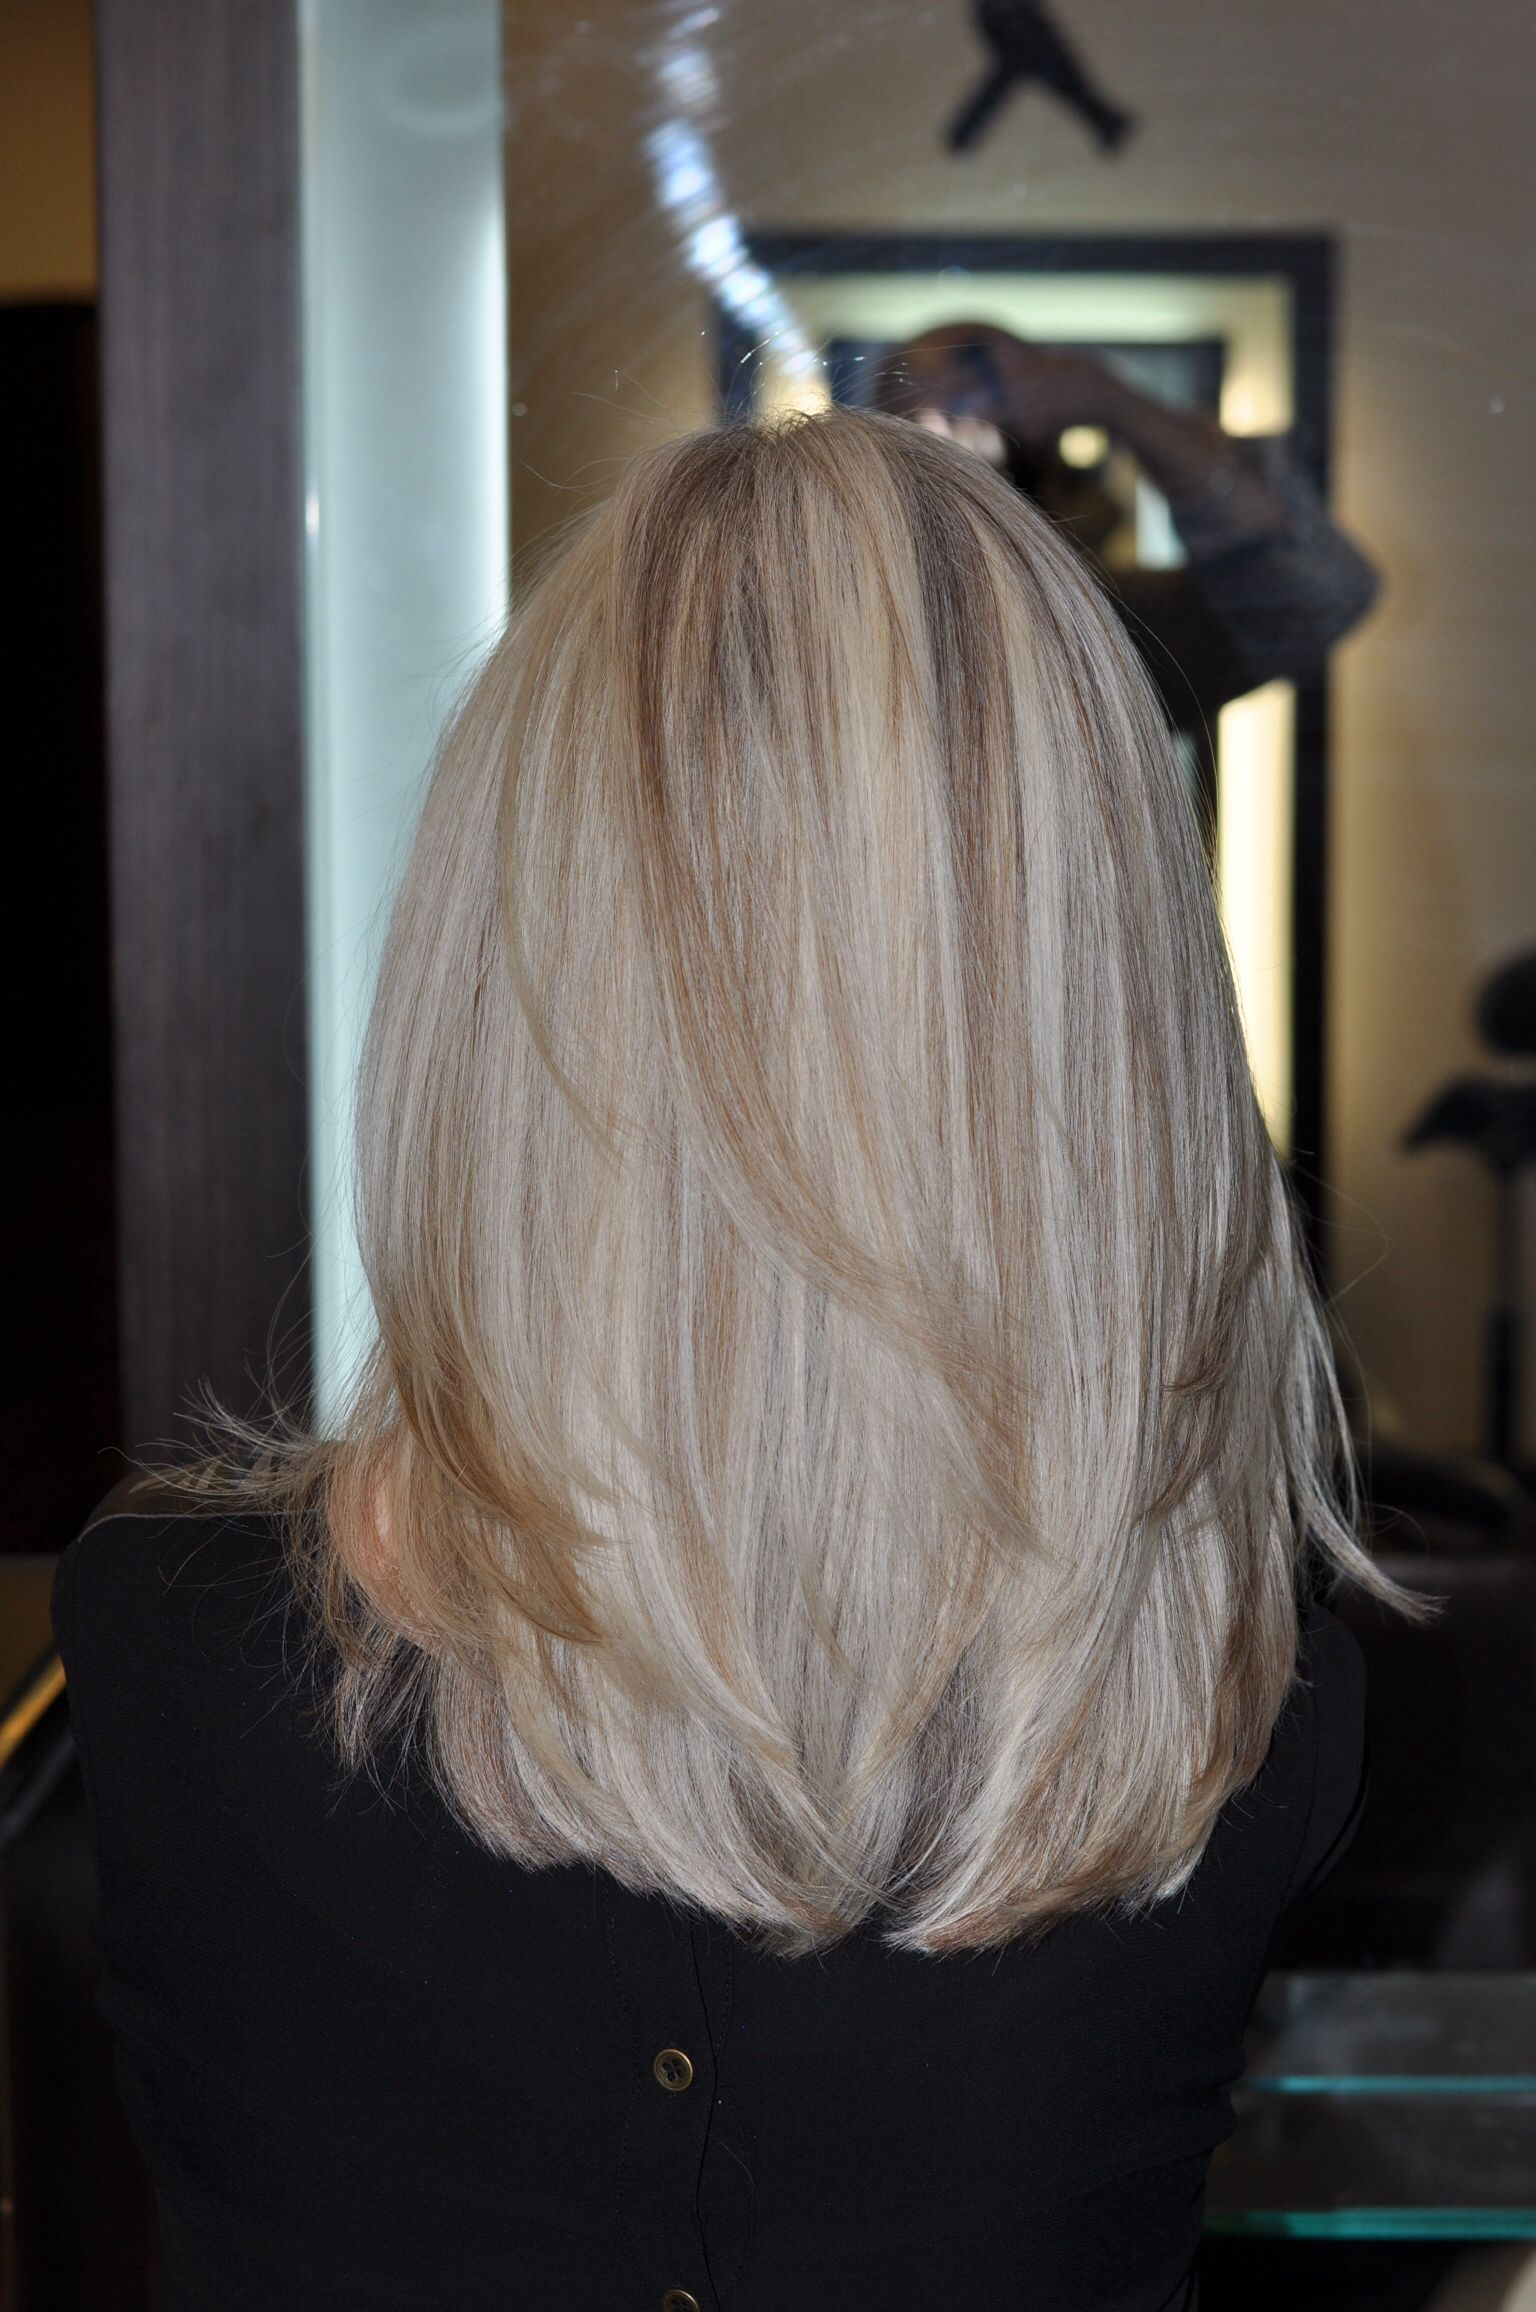 Beautiful blonde patternmatching highlights using the clientus